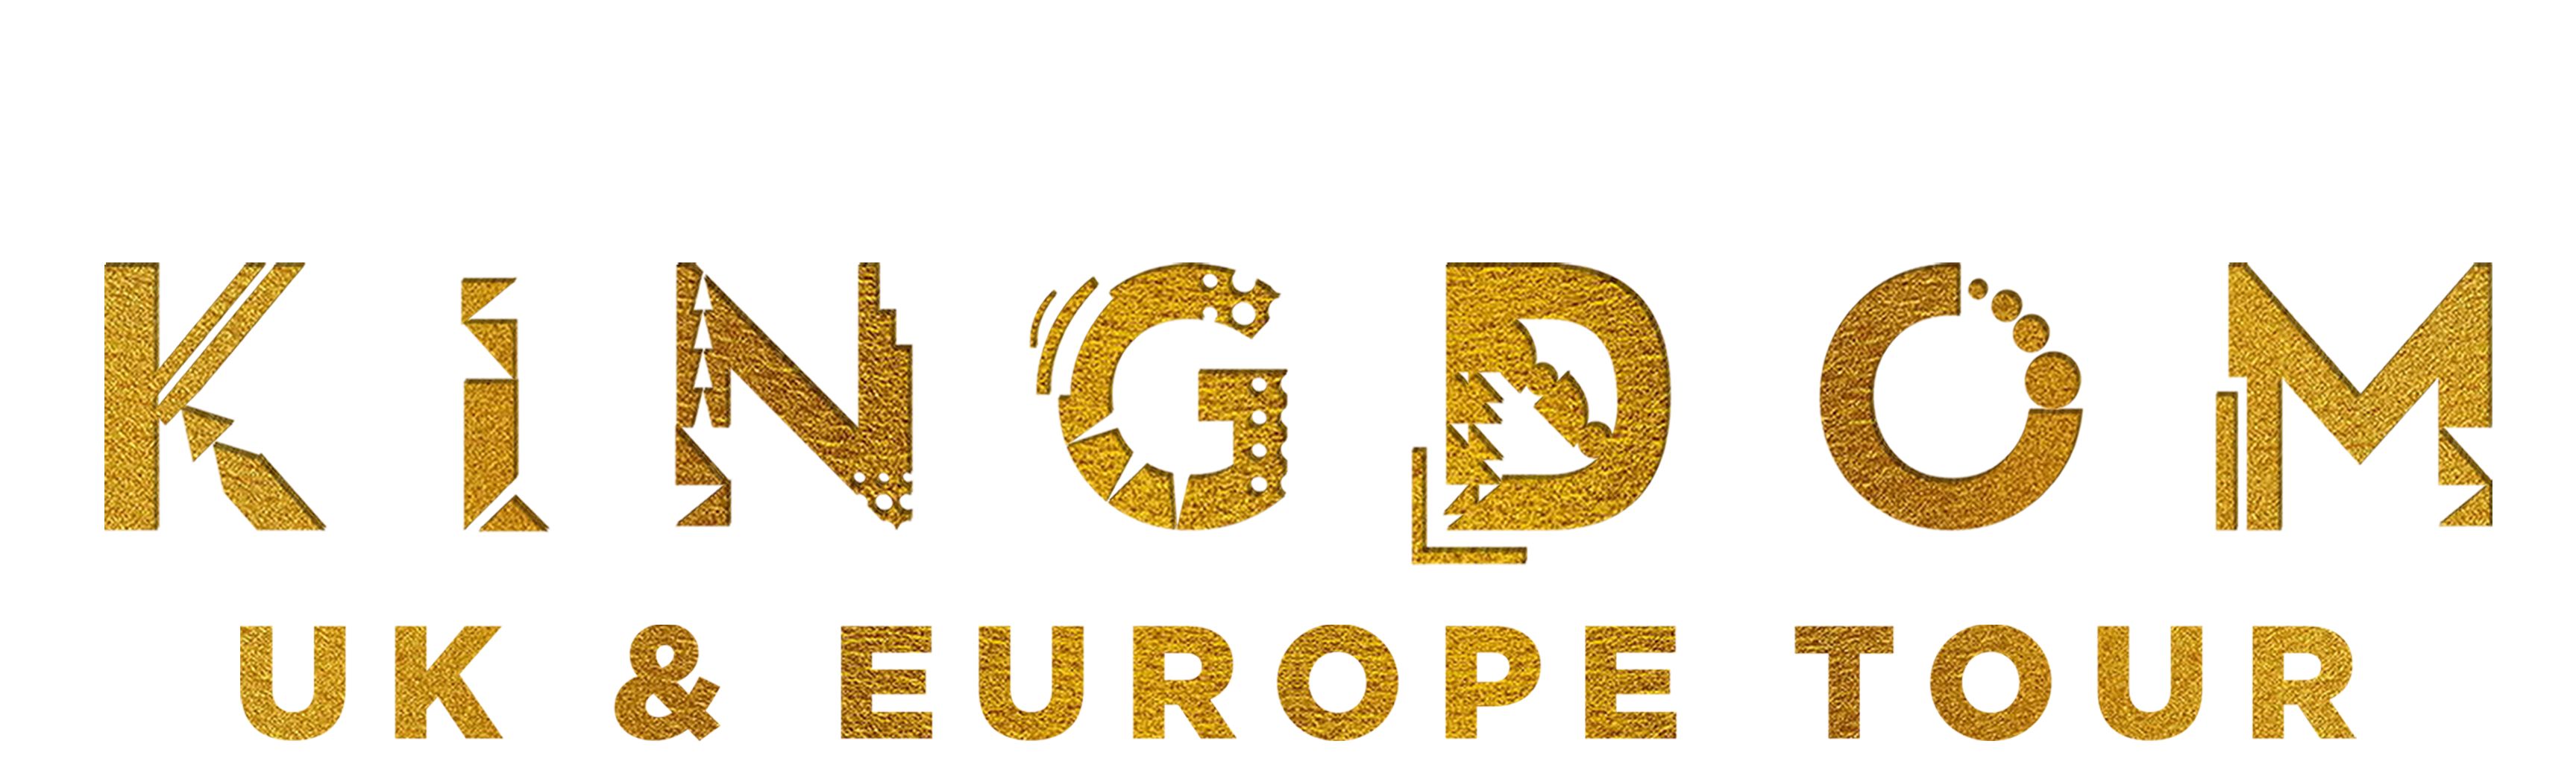 Gorgon city biocorpaavc